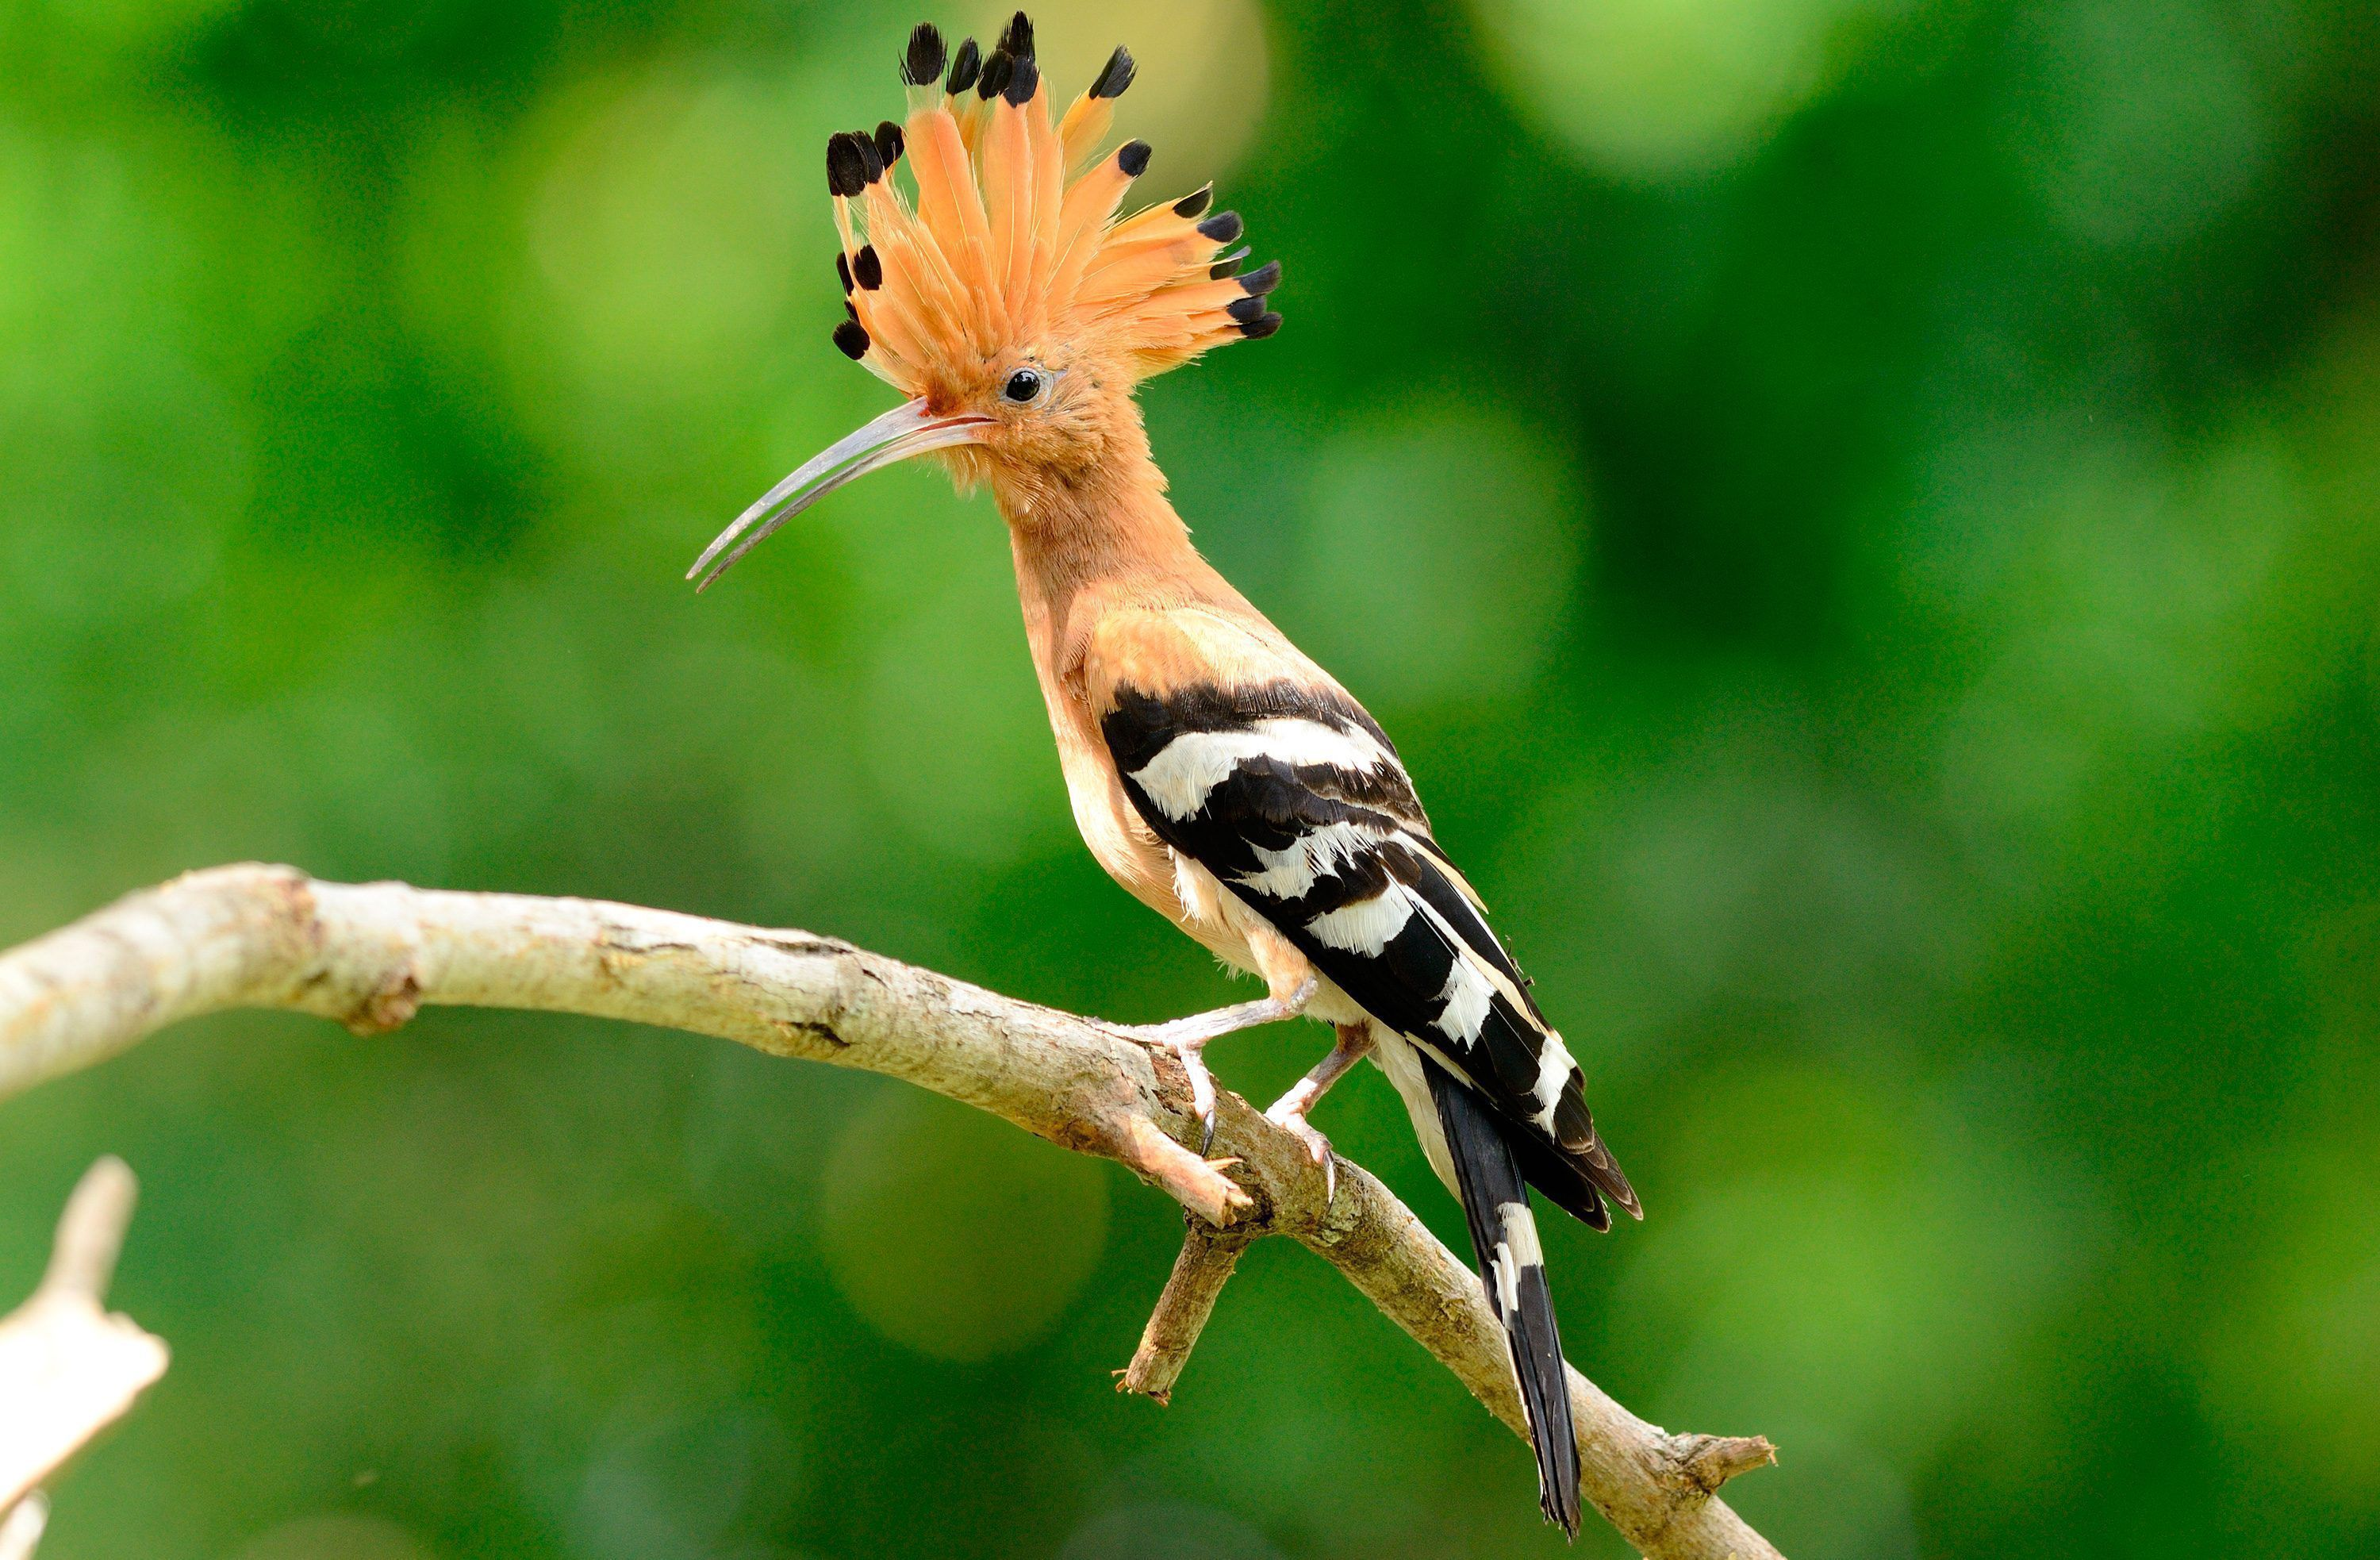 Aves Exoticas In High Resolution